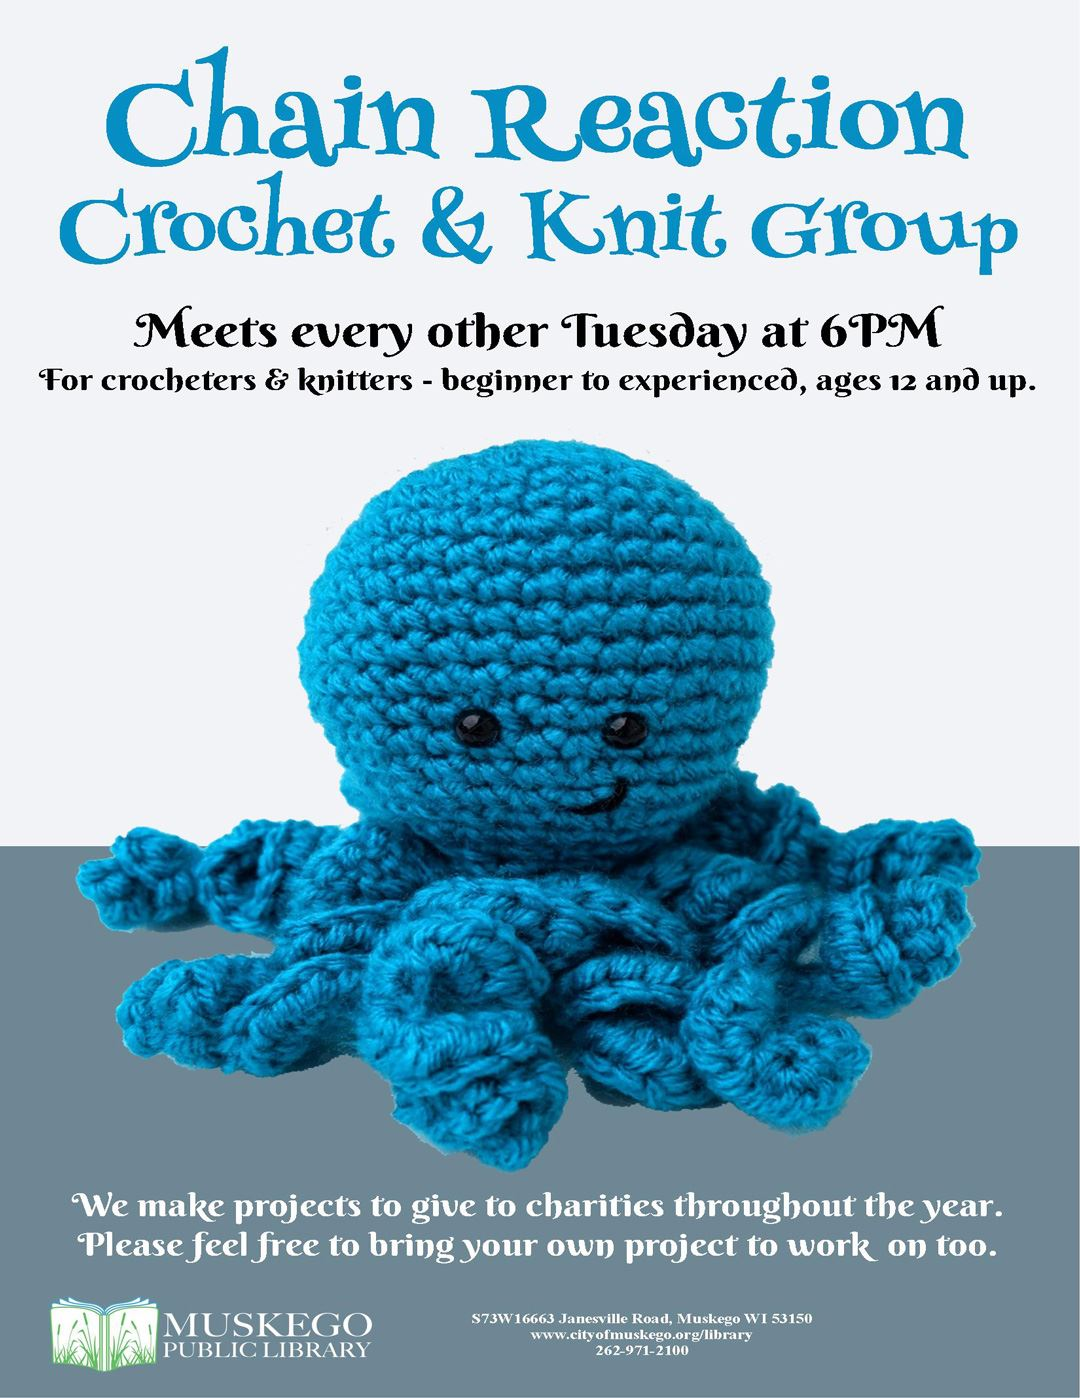 Chain Reaction Crochet Group